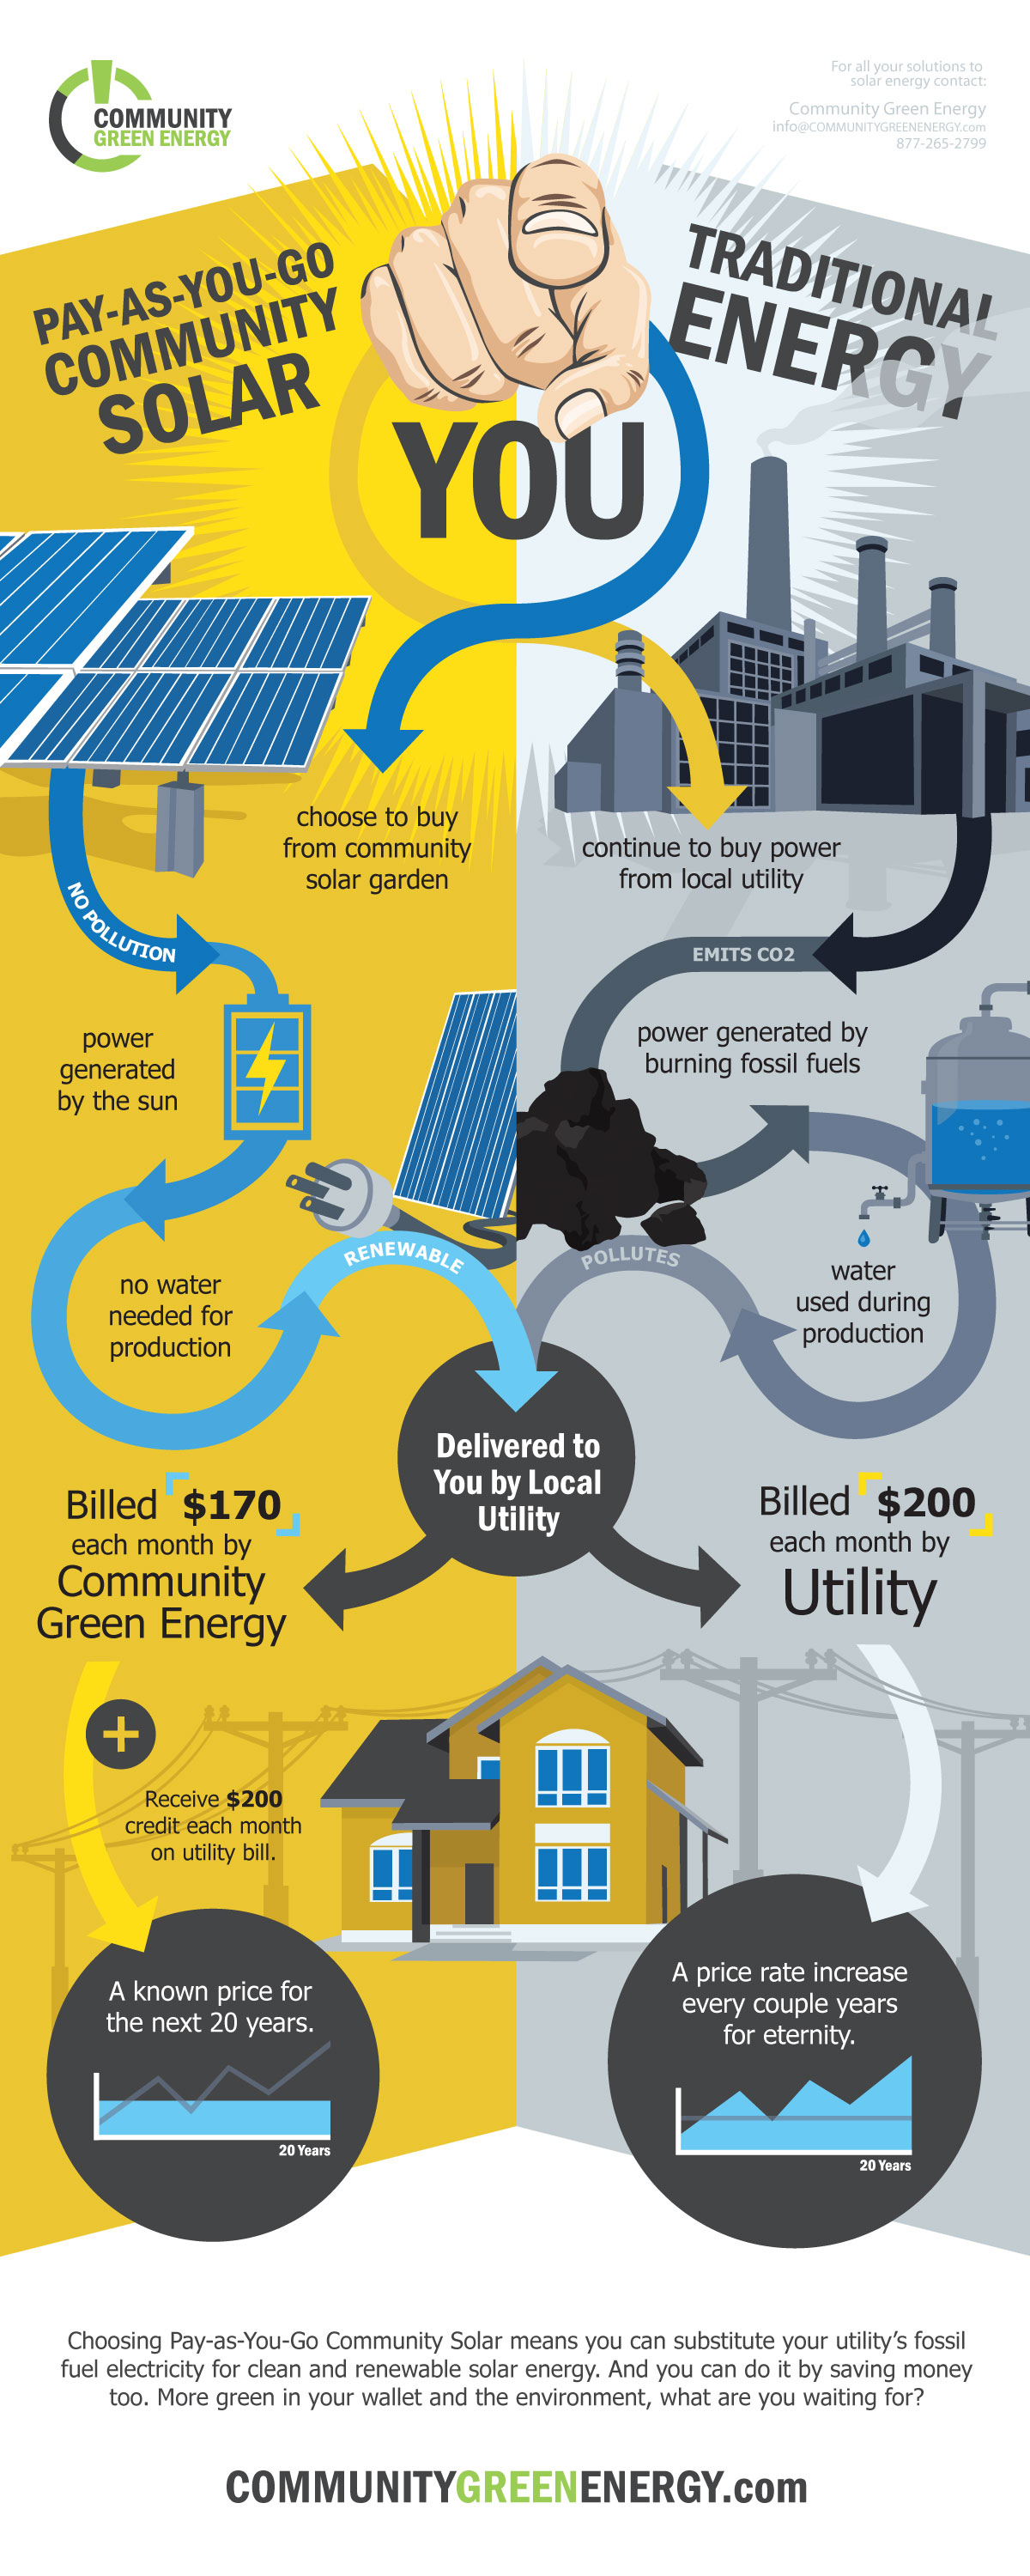 Pay-as-You-Go Community Solar vs. Traditional Energy Solutions